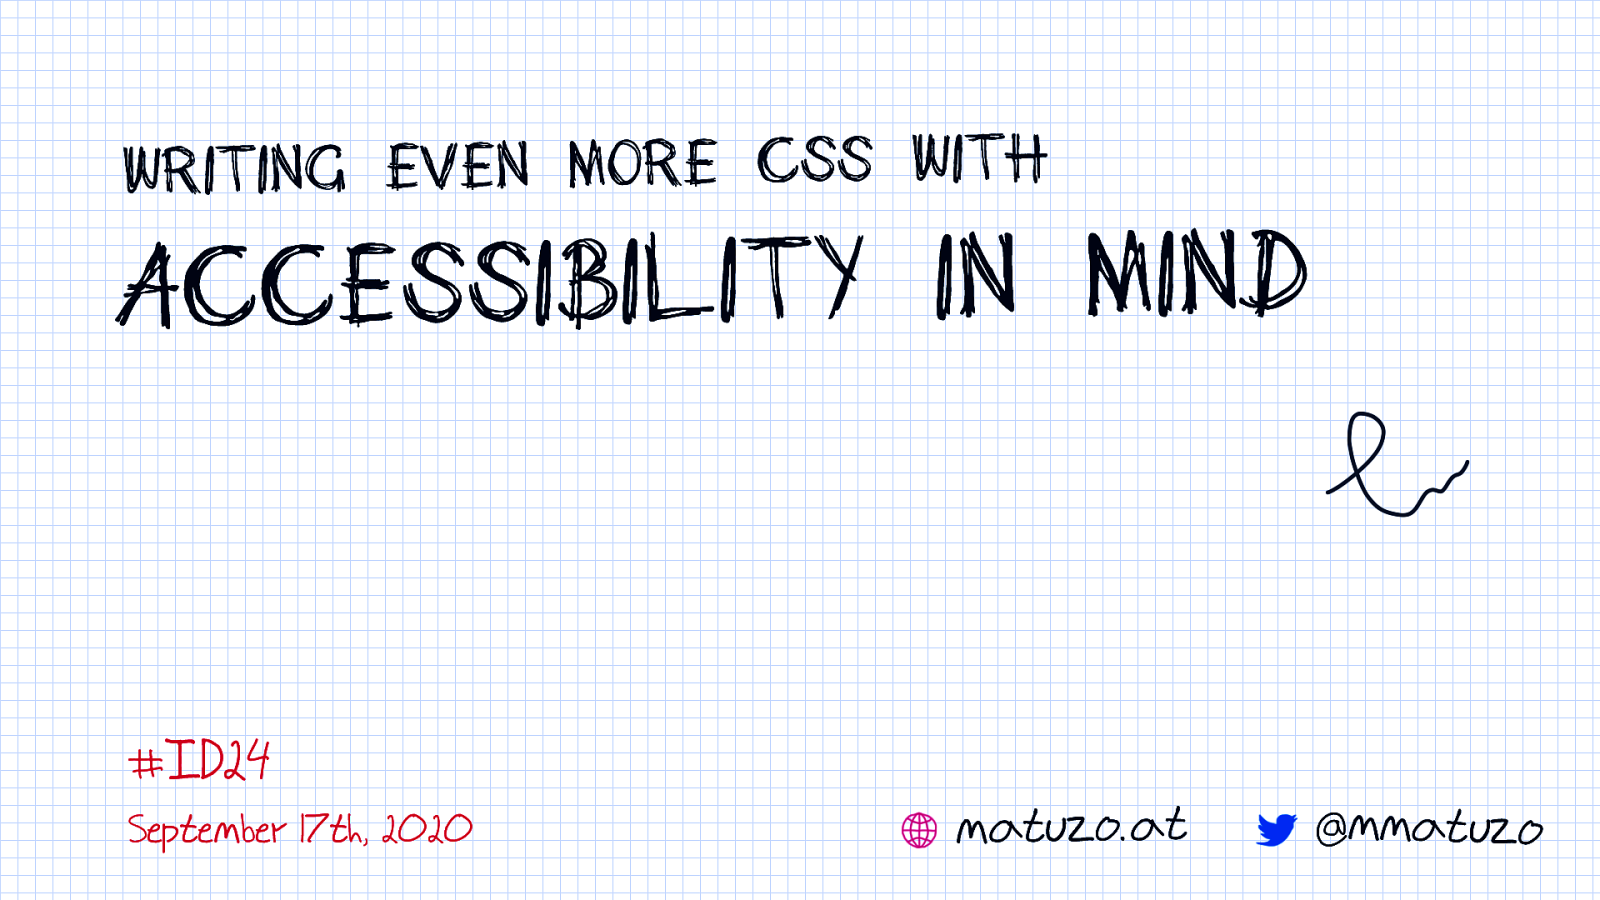 Writing even more CSS with Accessibility in mind